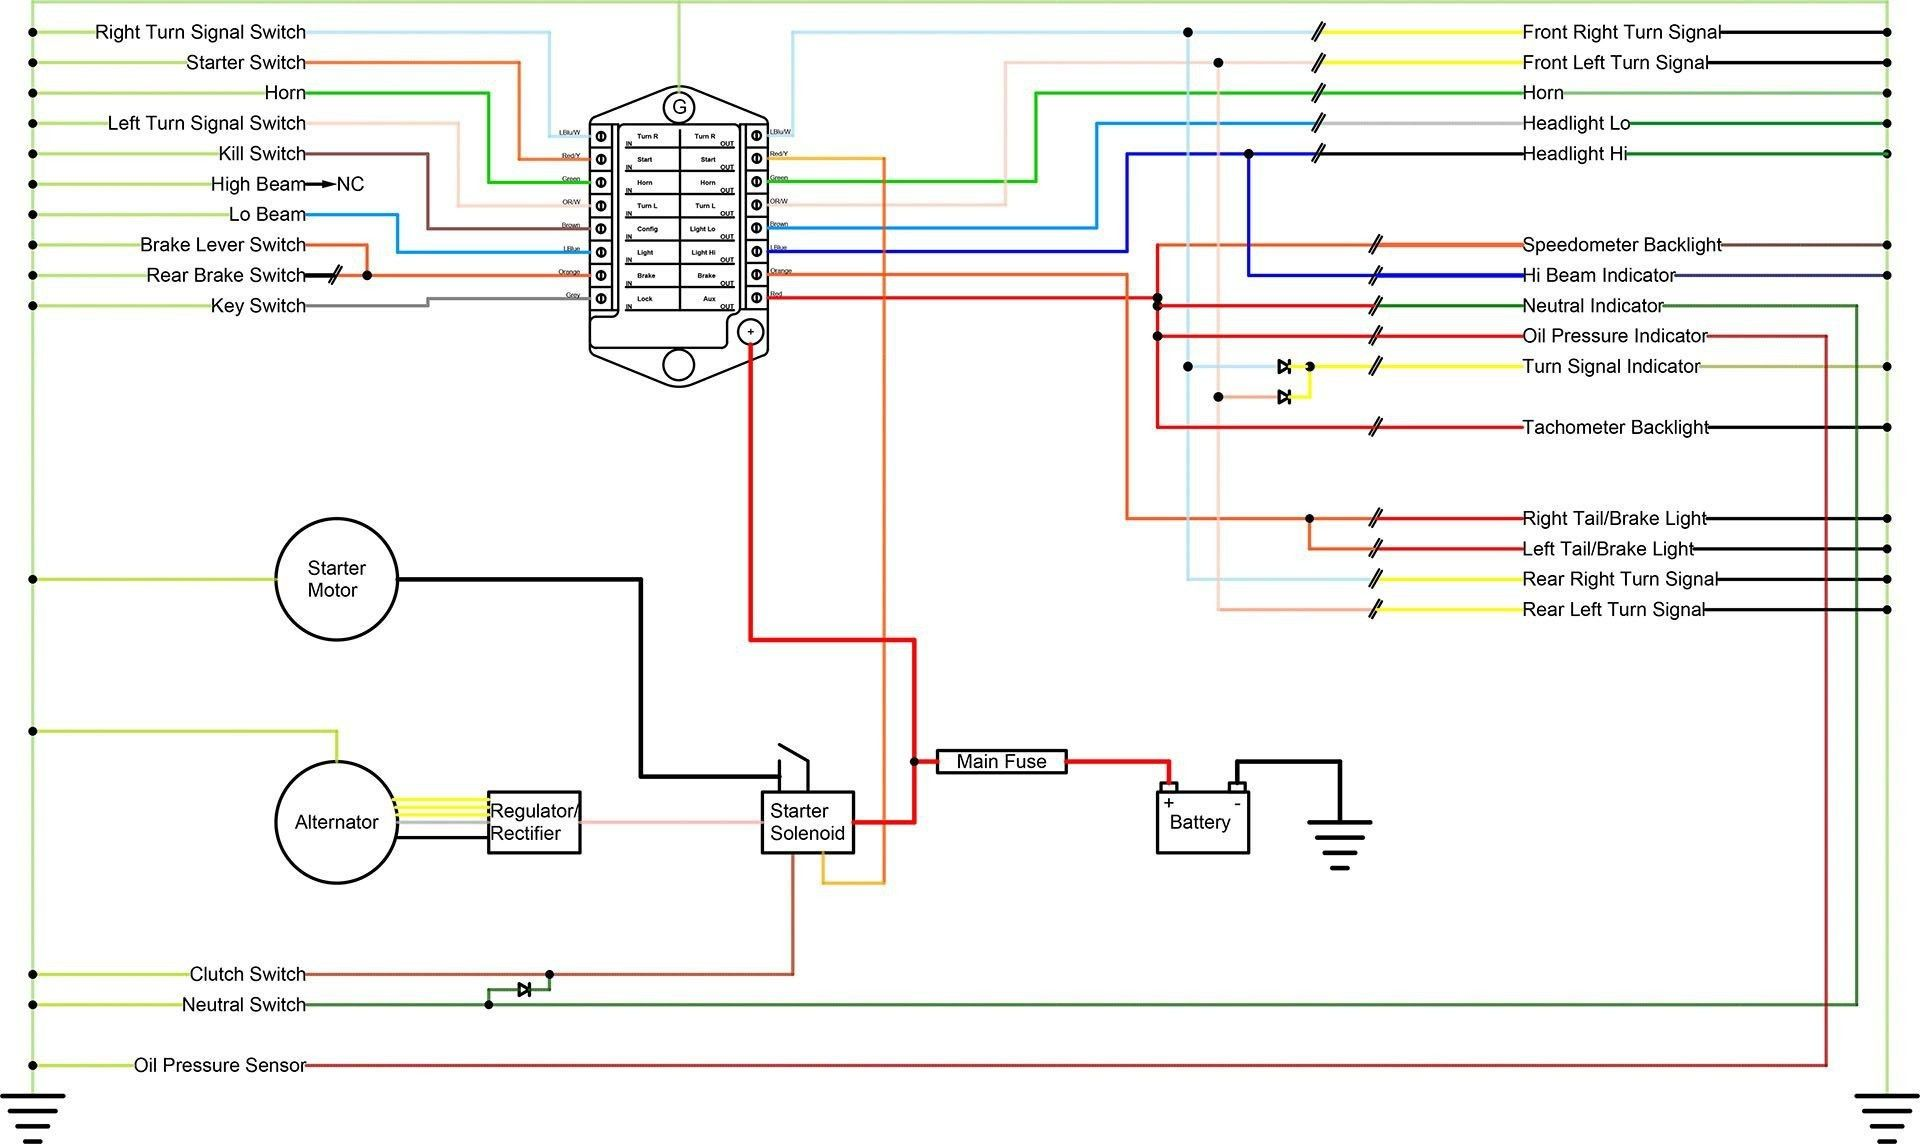 Awesome Ge Proline T8 Ballast Wiring Diagram In 2020 Cb750 Diagram Diagram Chart